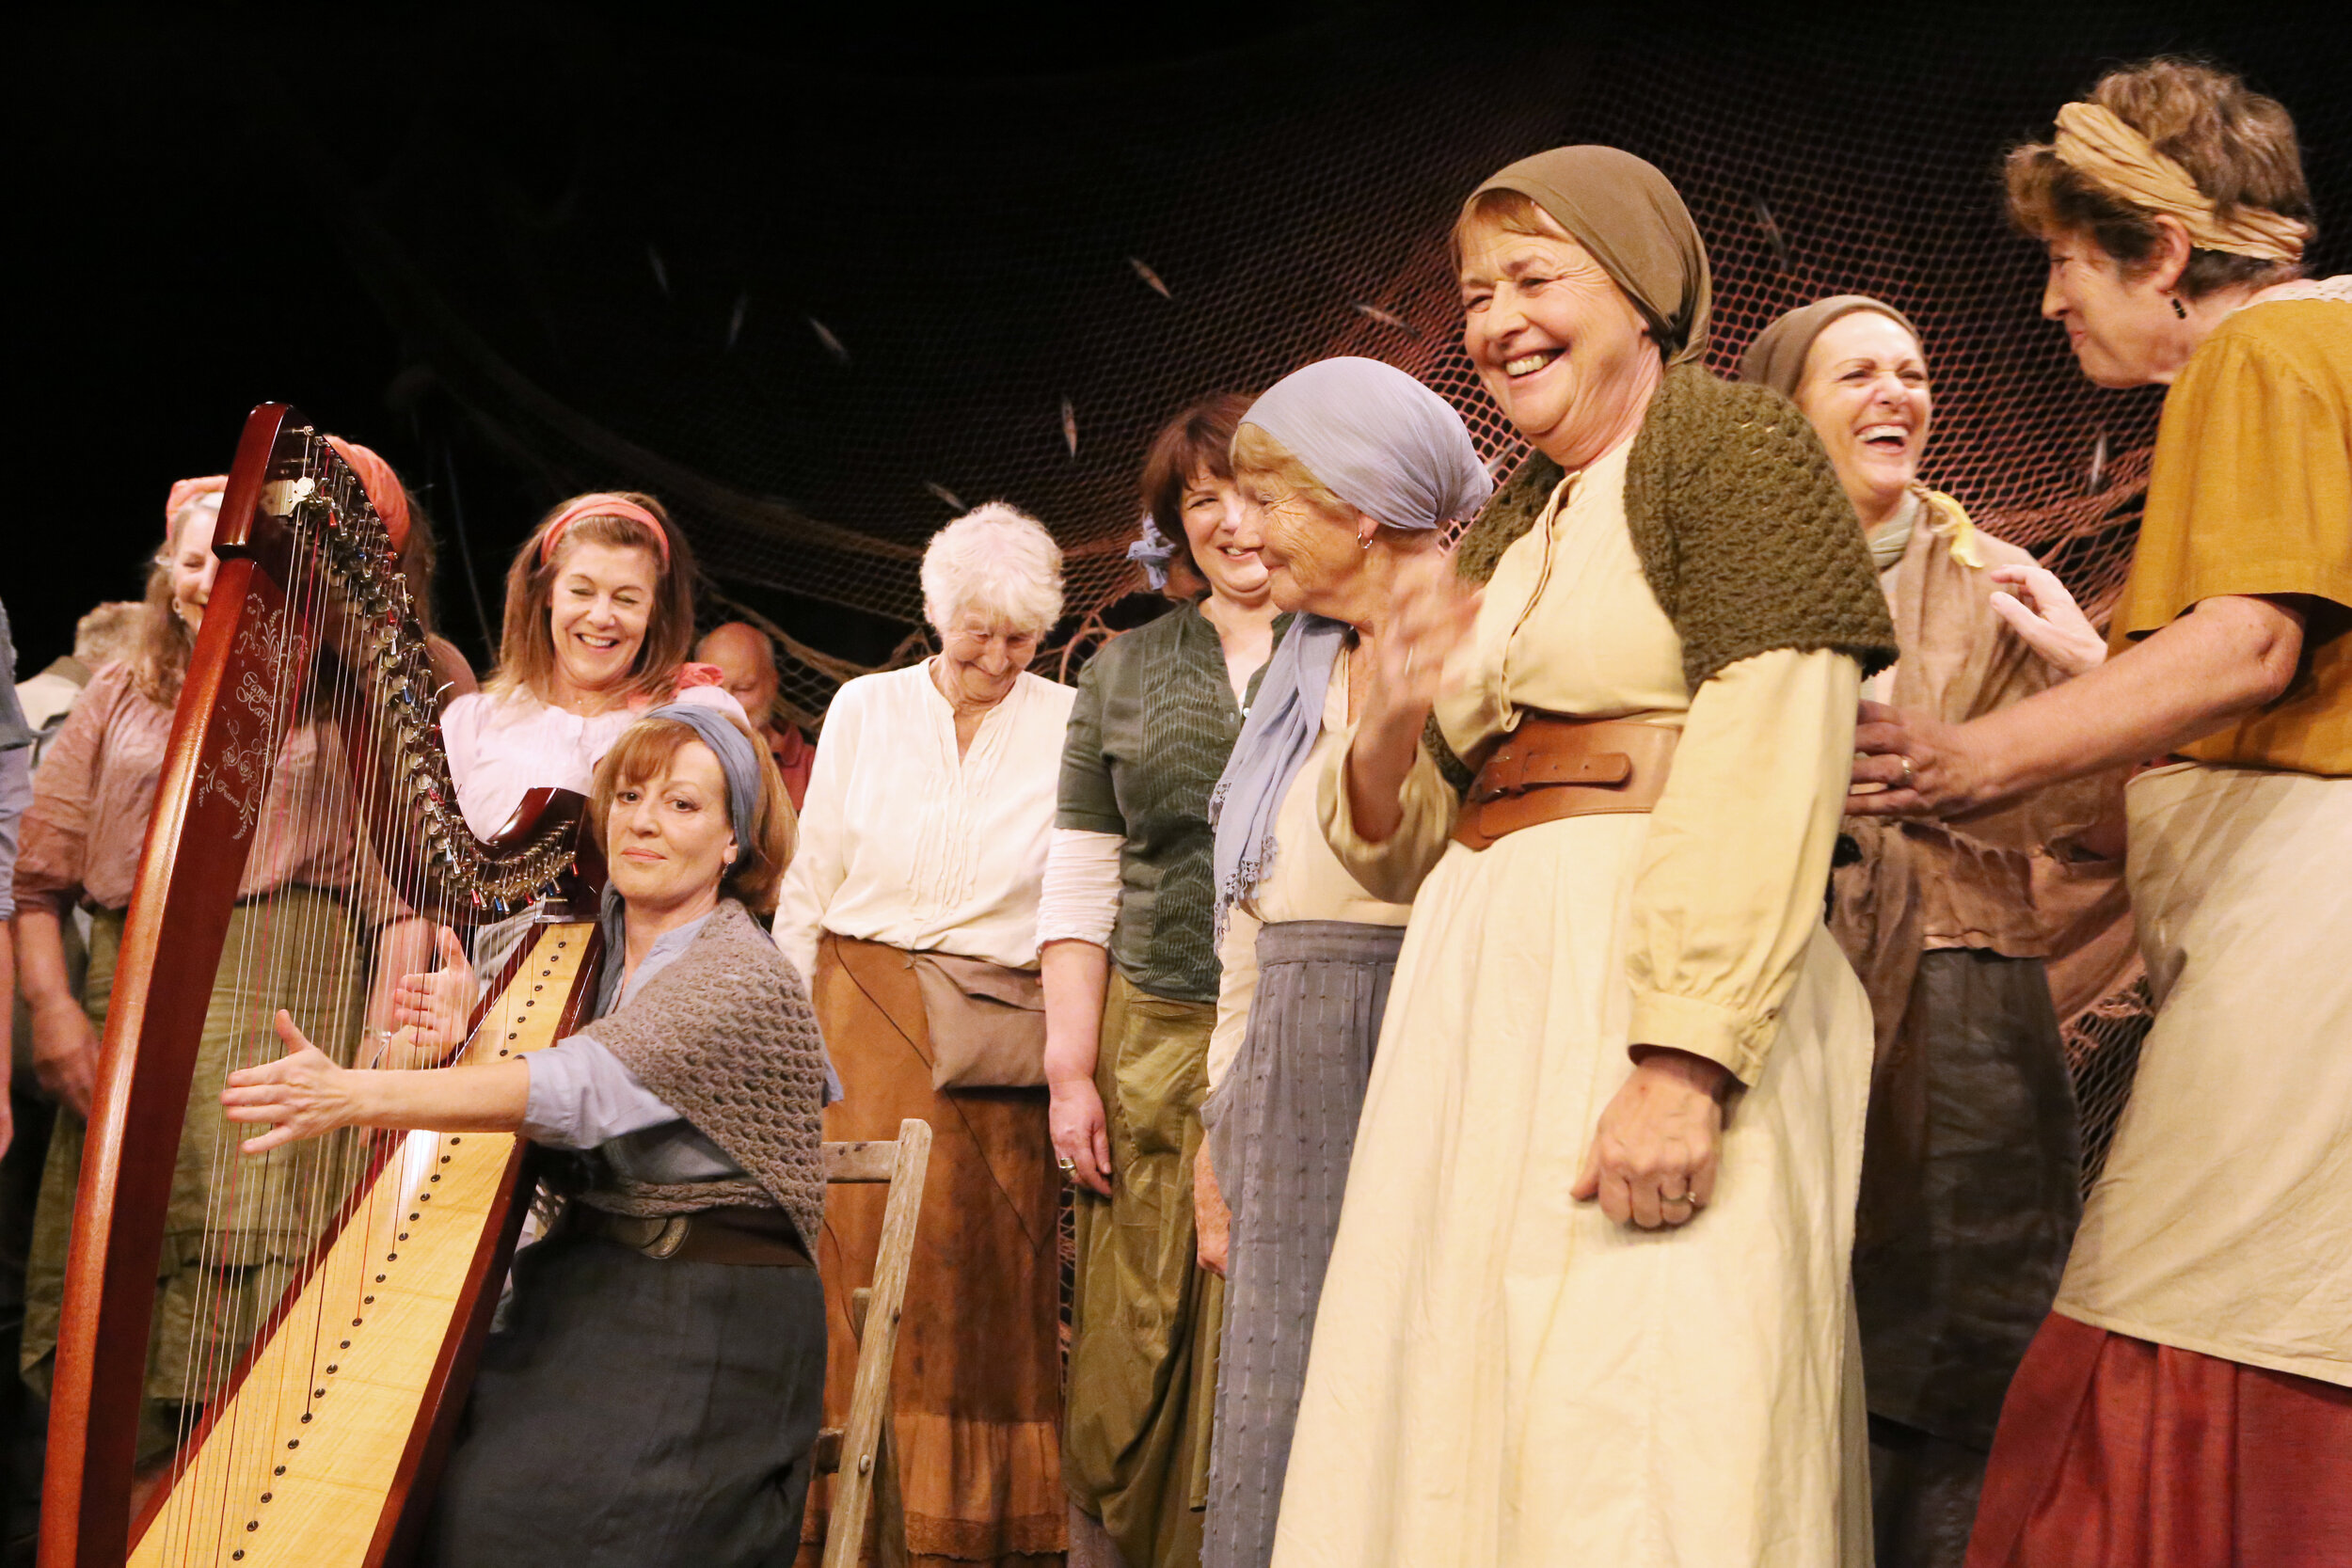 The Ladies singing 'The Cockle Gatherers' with Carmel on the harp 2019